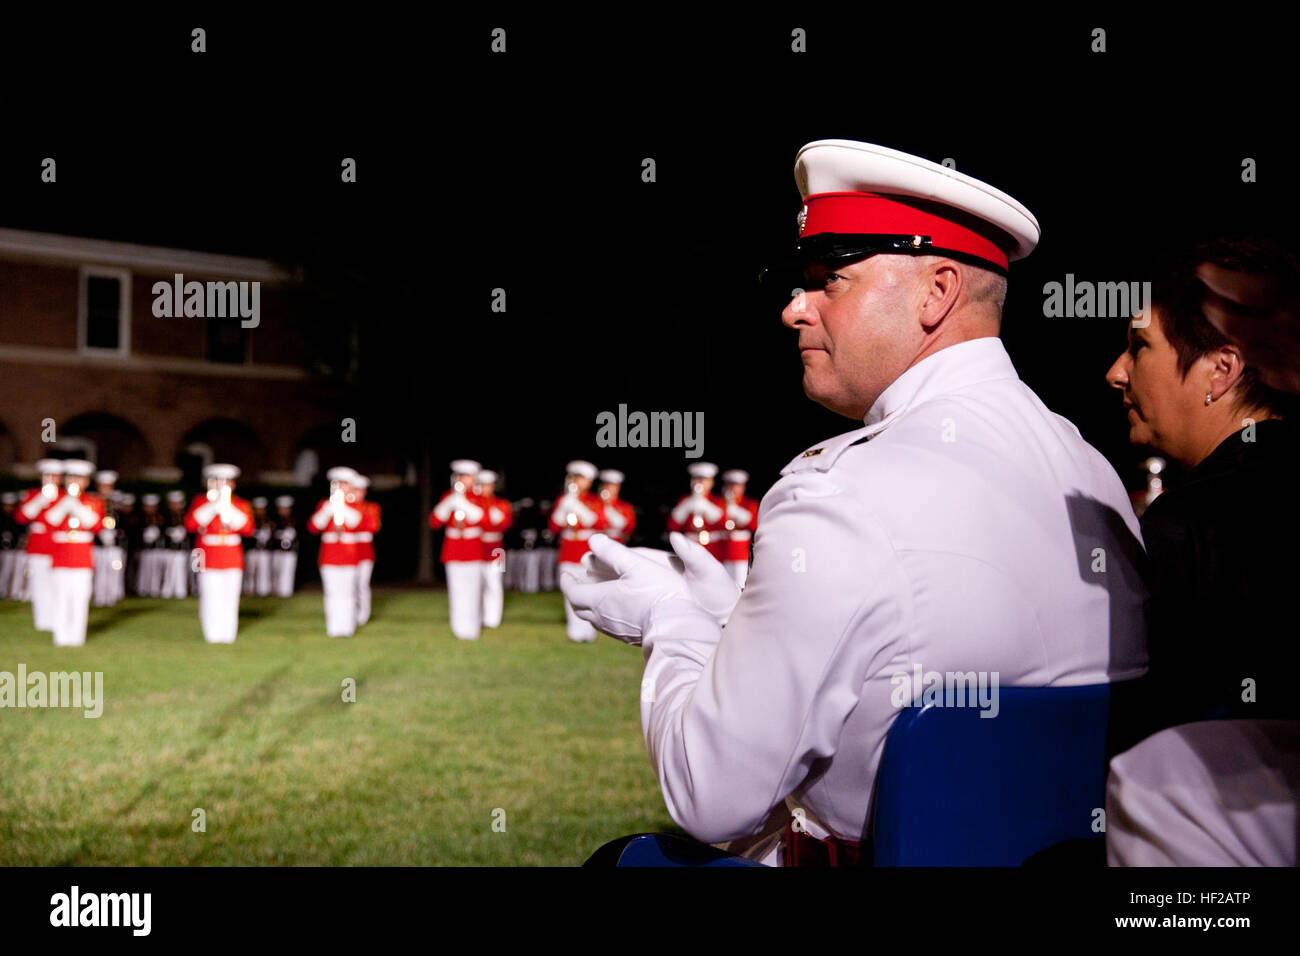 The Corps Regimental Sergeant Major of the British Royal Marines, Sgt. Maj. Alistar McGill, attends an Evening Parade Stock Photo